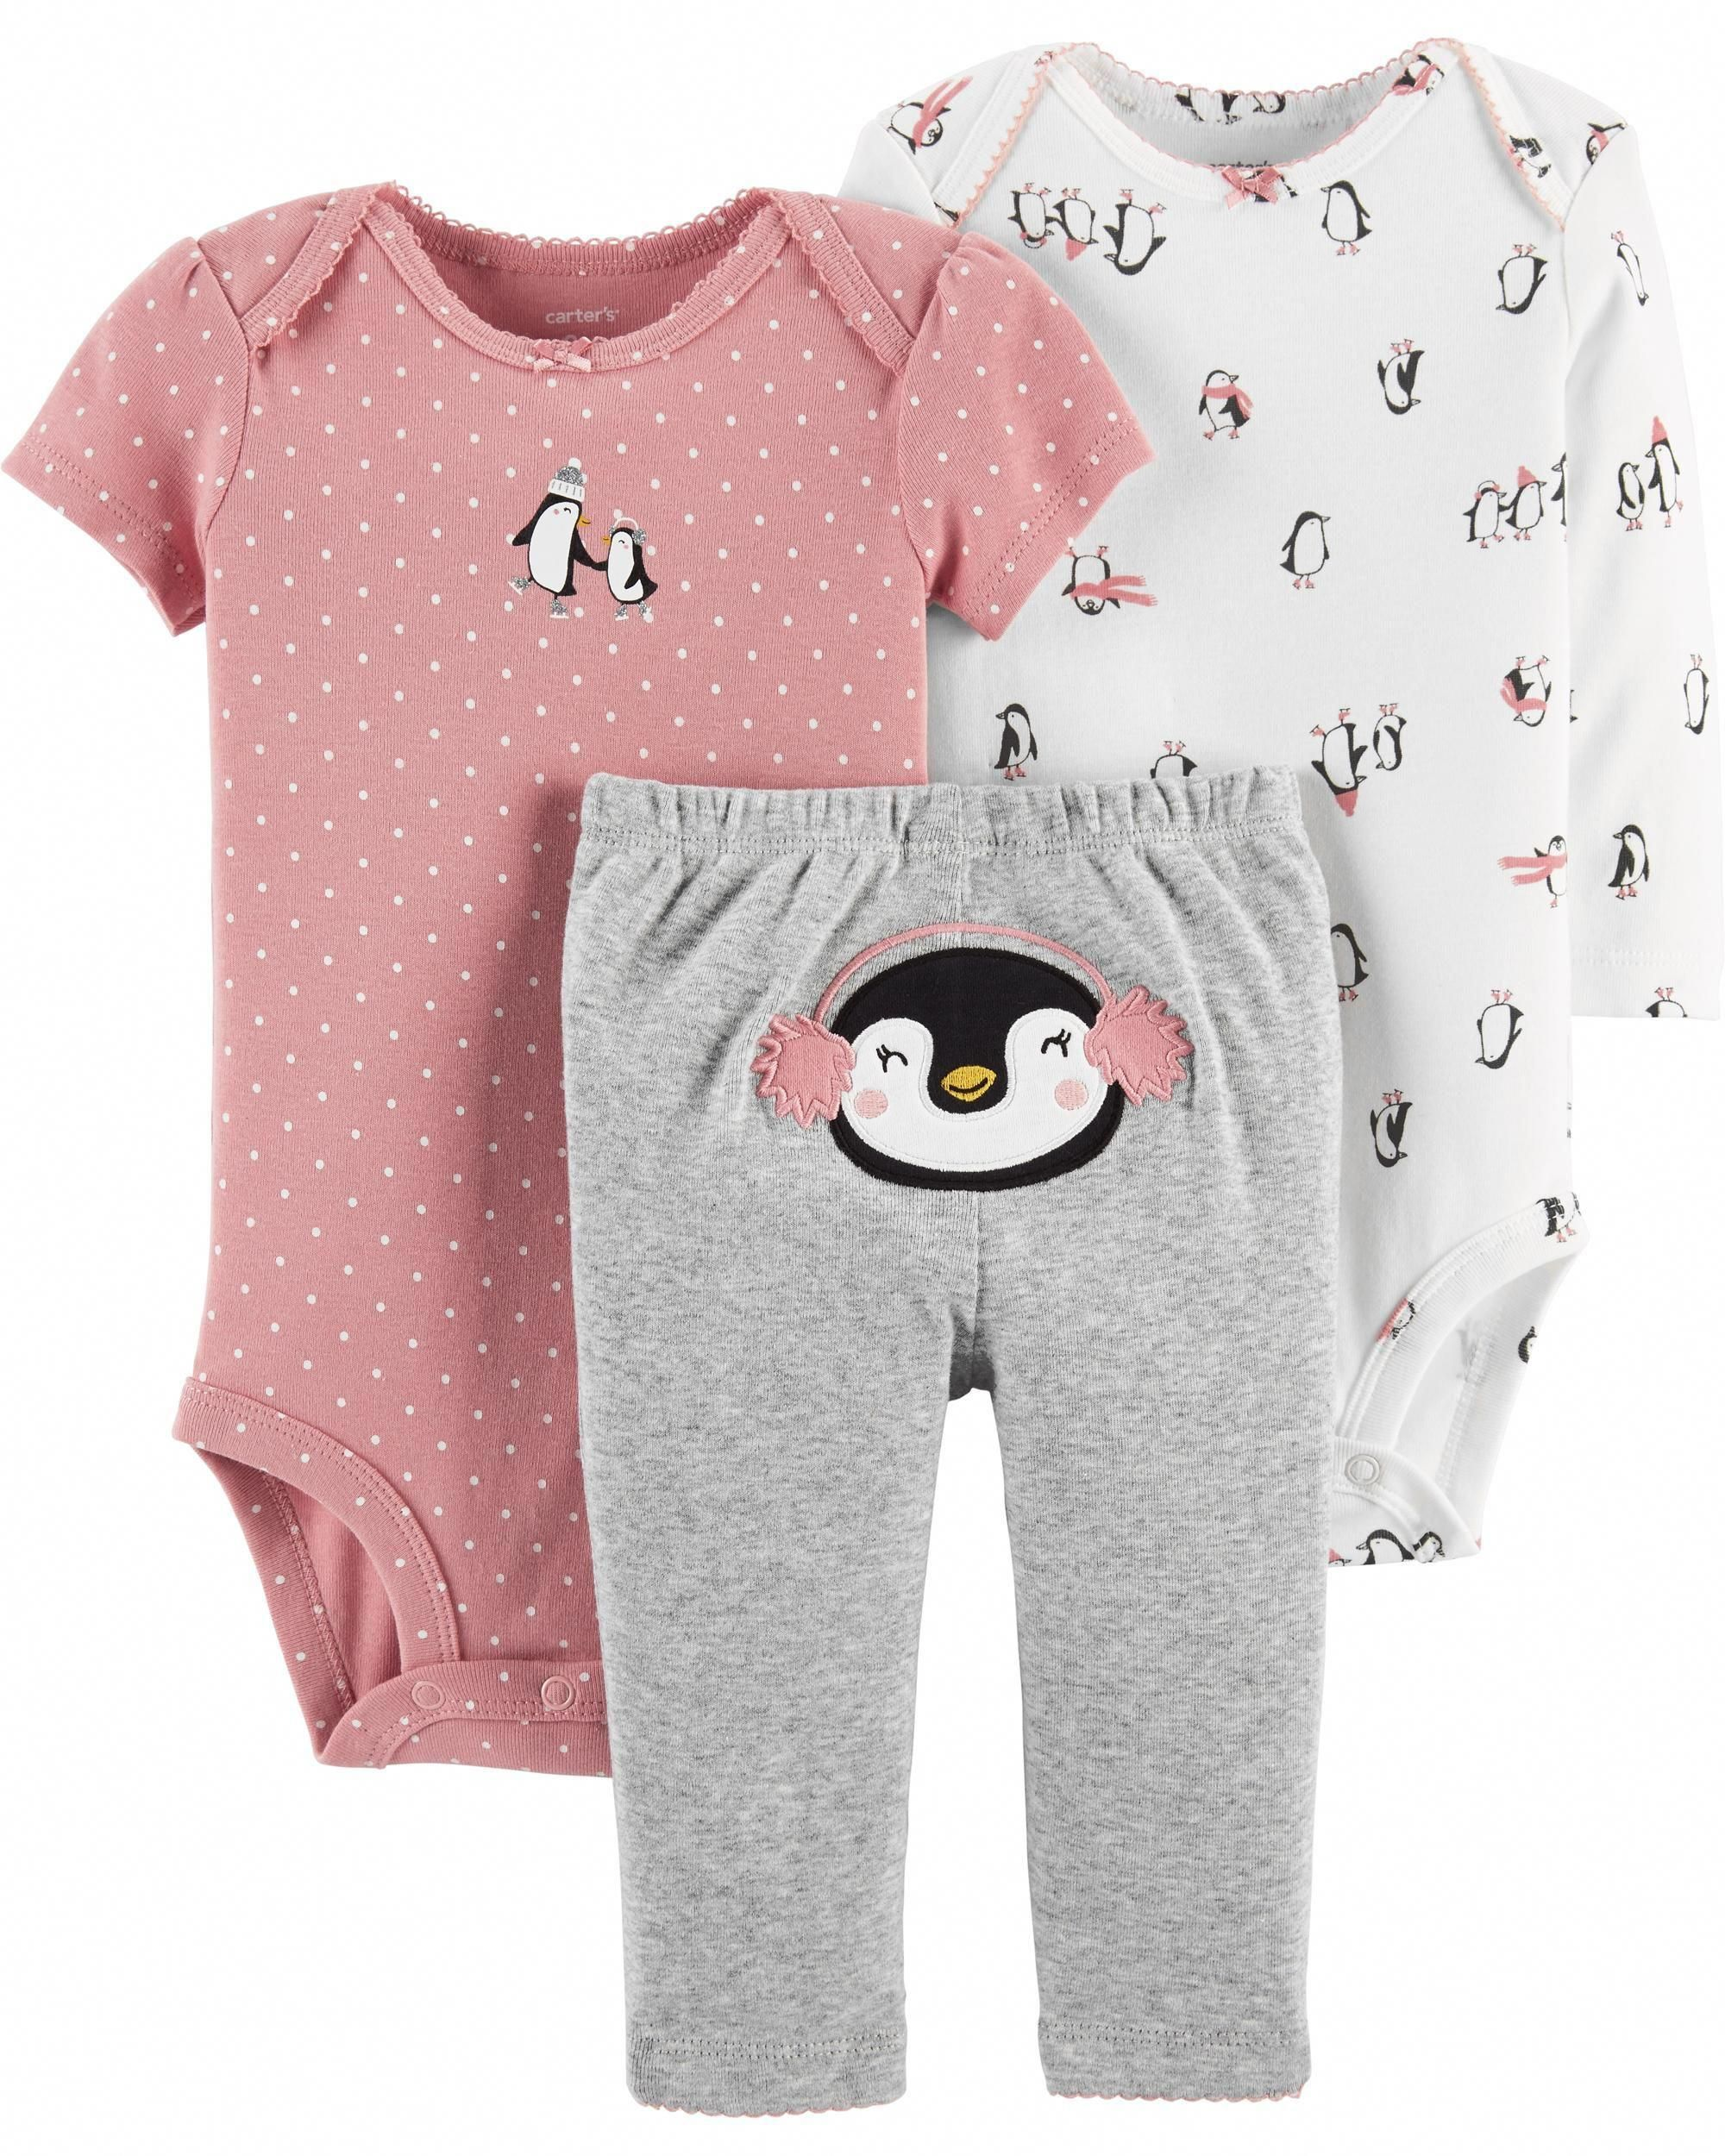 ad94421ef4e6 Baby Girl Clothing Stores Online | New Baby Sleepsuits | Cute Newborn  Sleepers 20181227